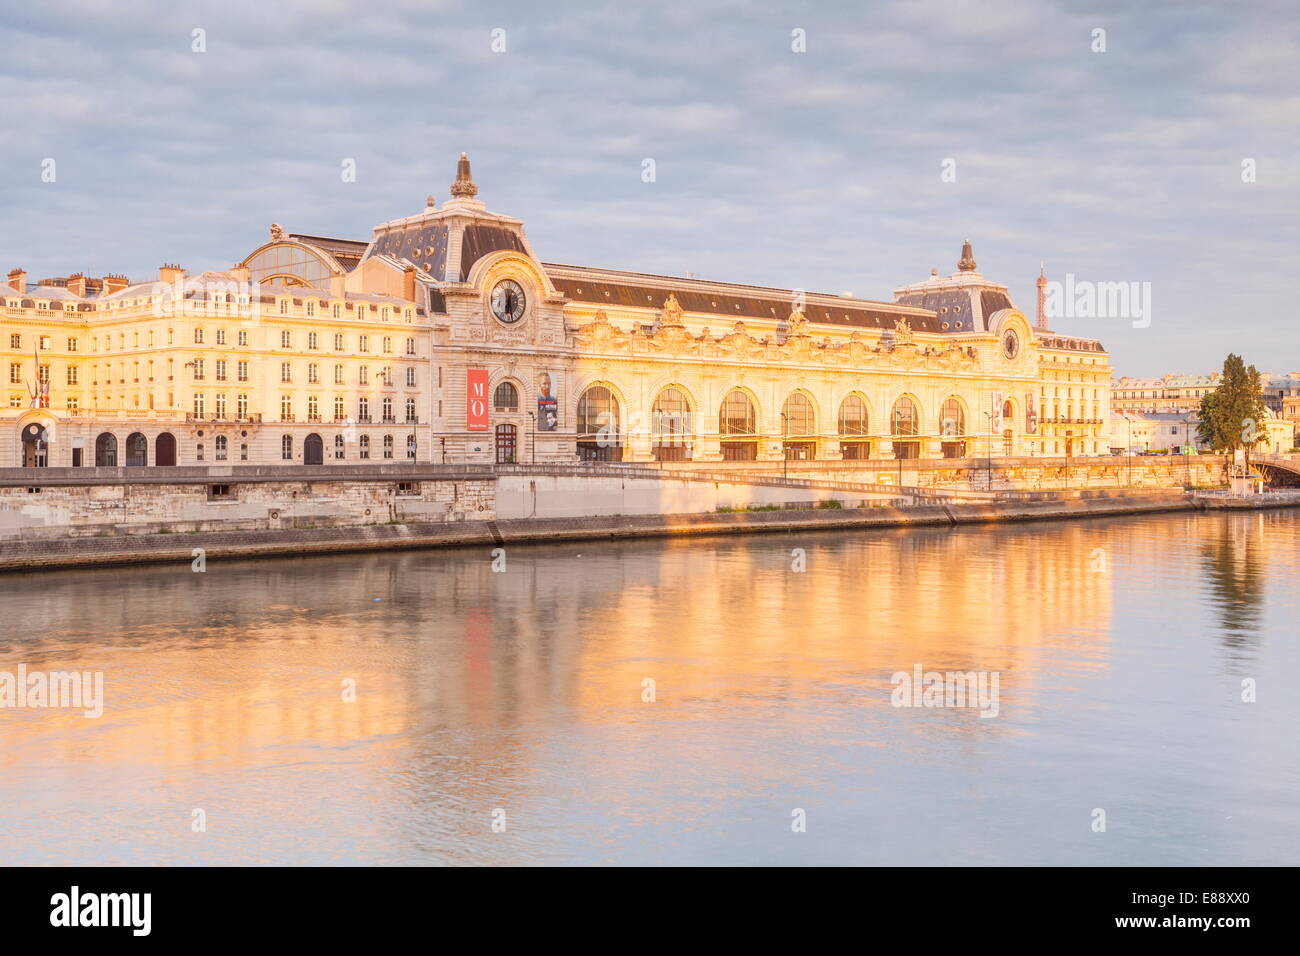 Musee d'Orsay on the River Seine, Paris, France, Europe - Stock Image